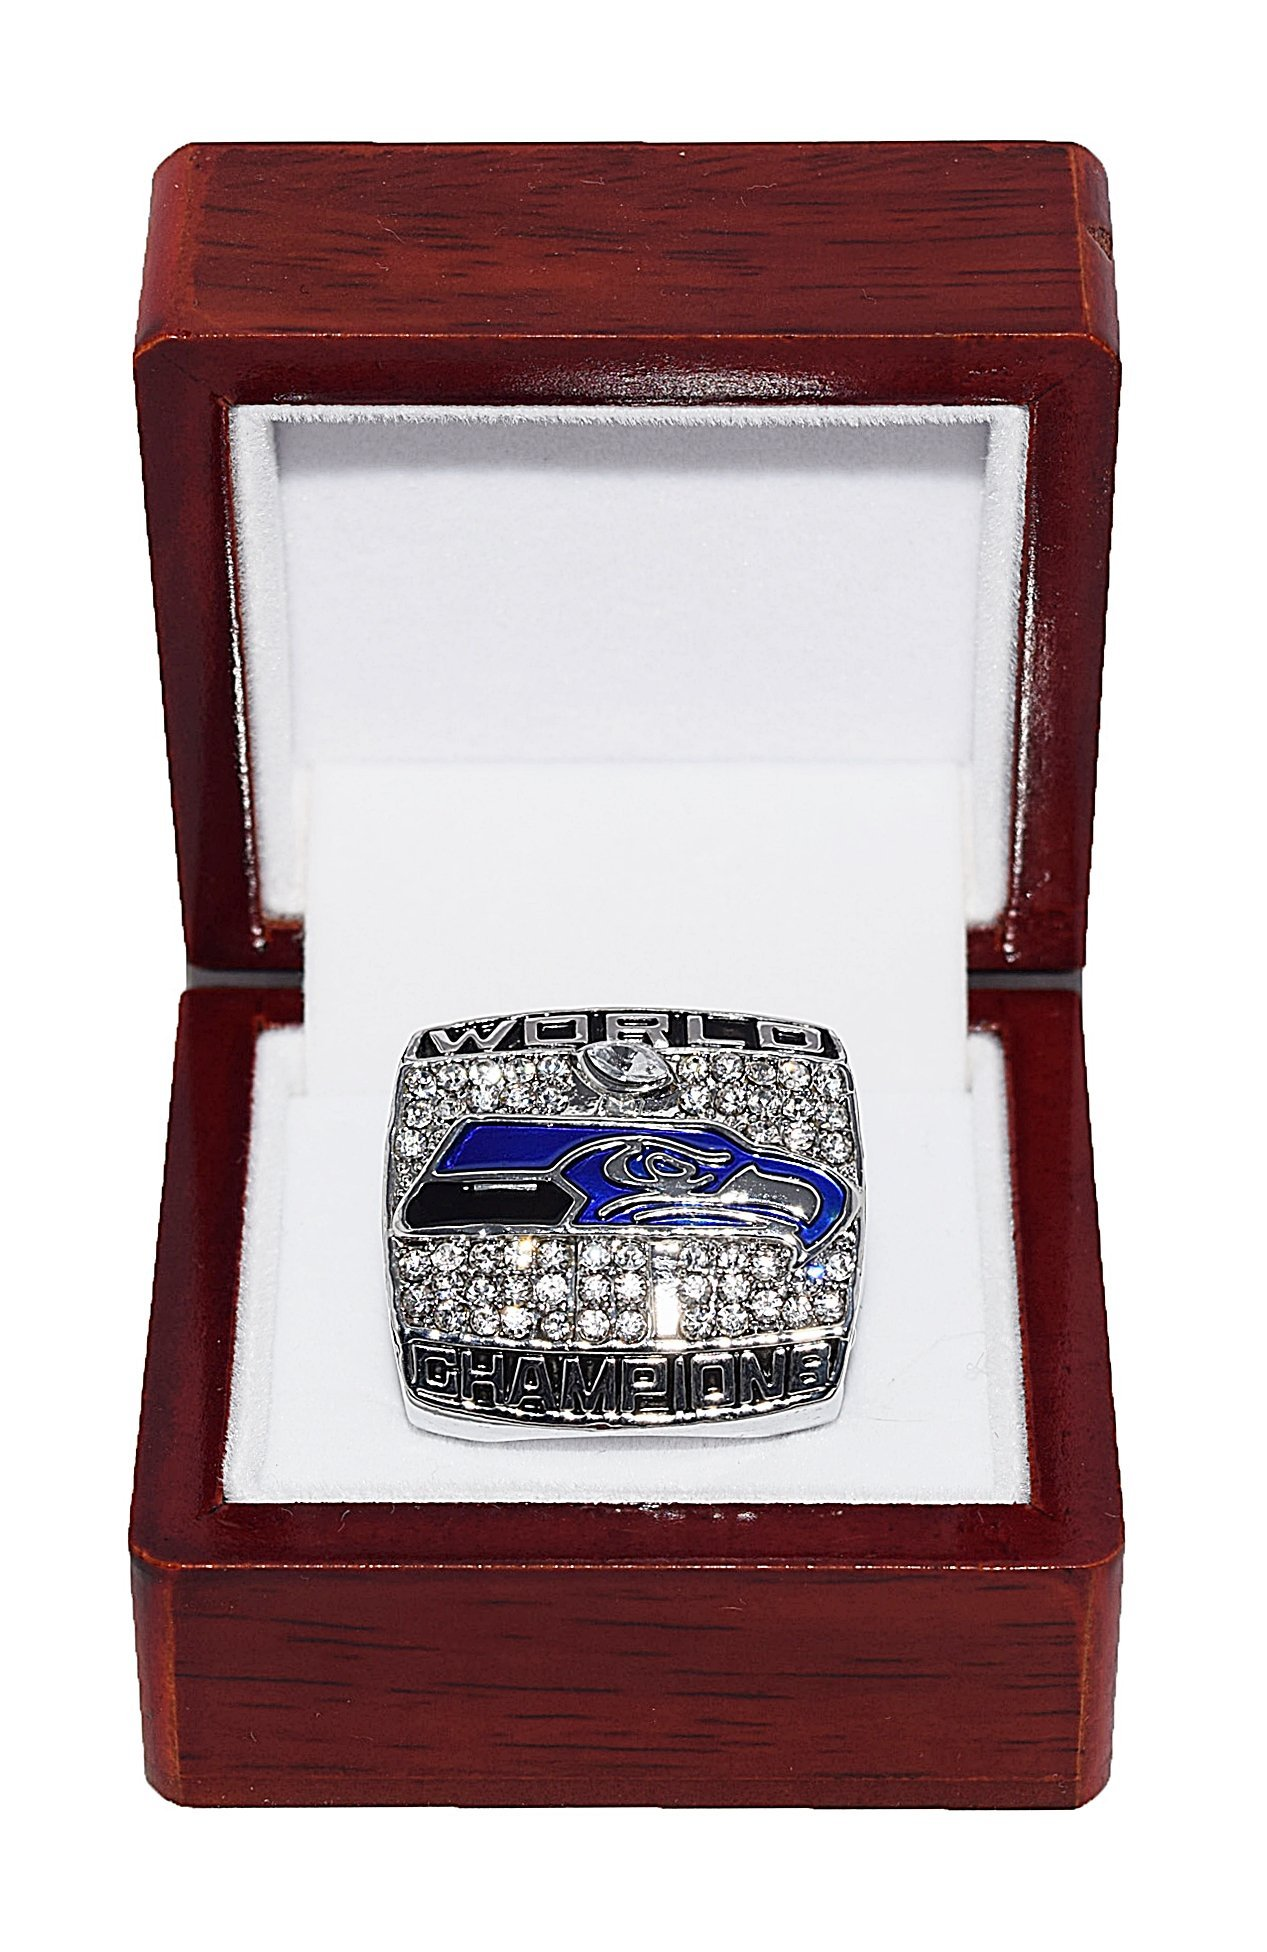 SEATTLE SEAHAWKS 2013 SUPER BOWL XLVIII WORLD CHAMPIONS (Vs. Denver Broncos) #1 Fan Rare & Collectible High Quality Replica NFL Football Silver Championship Ring with Cherrywood Display Box